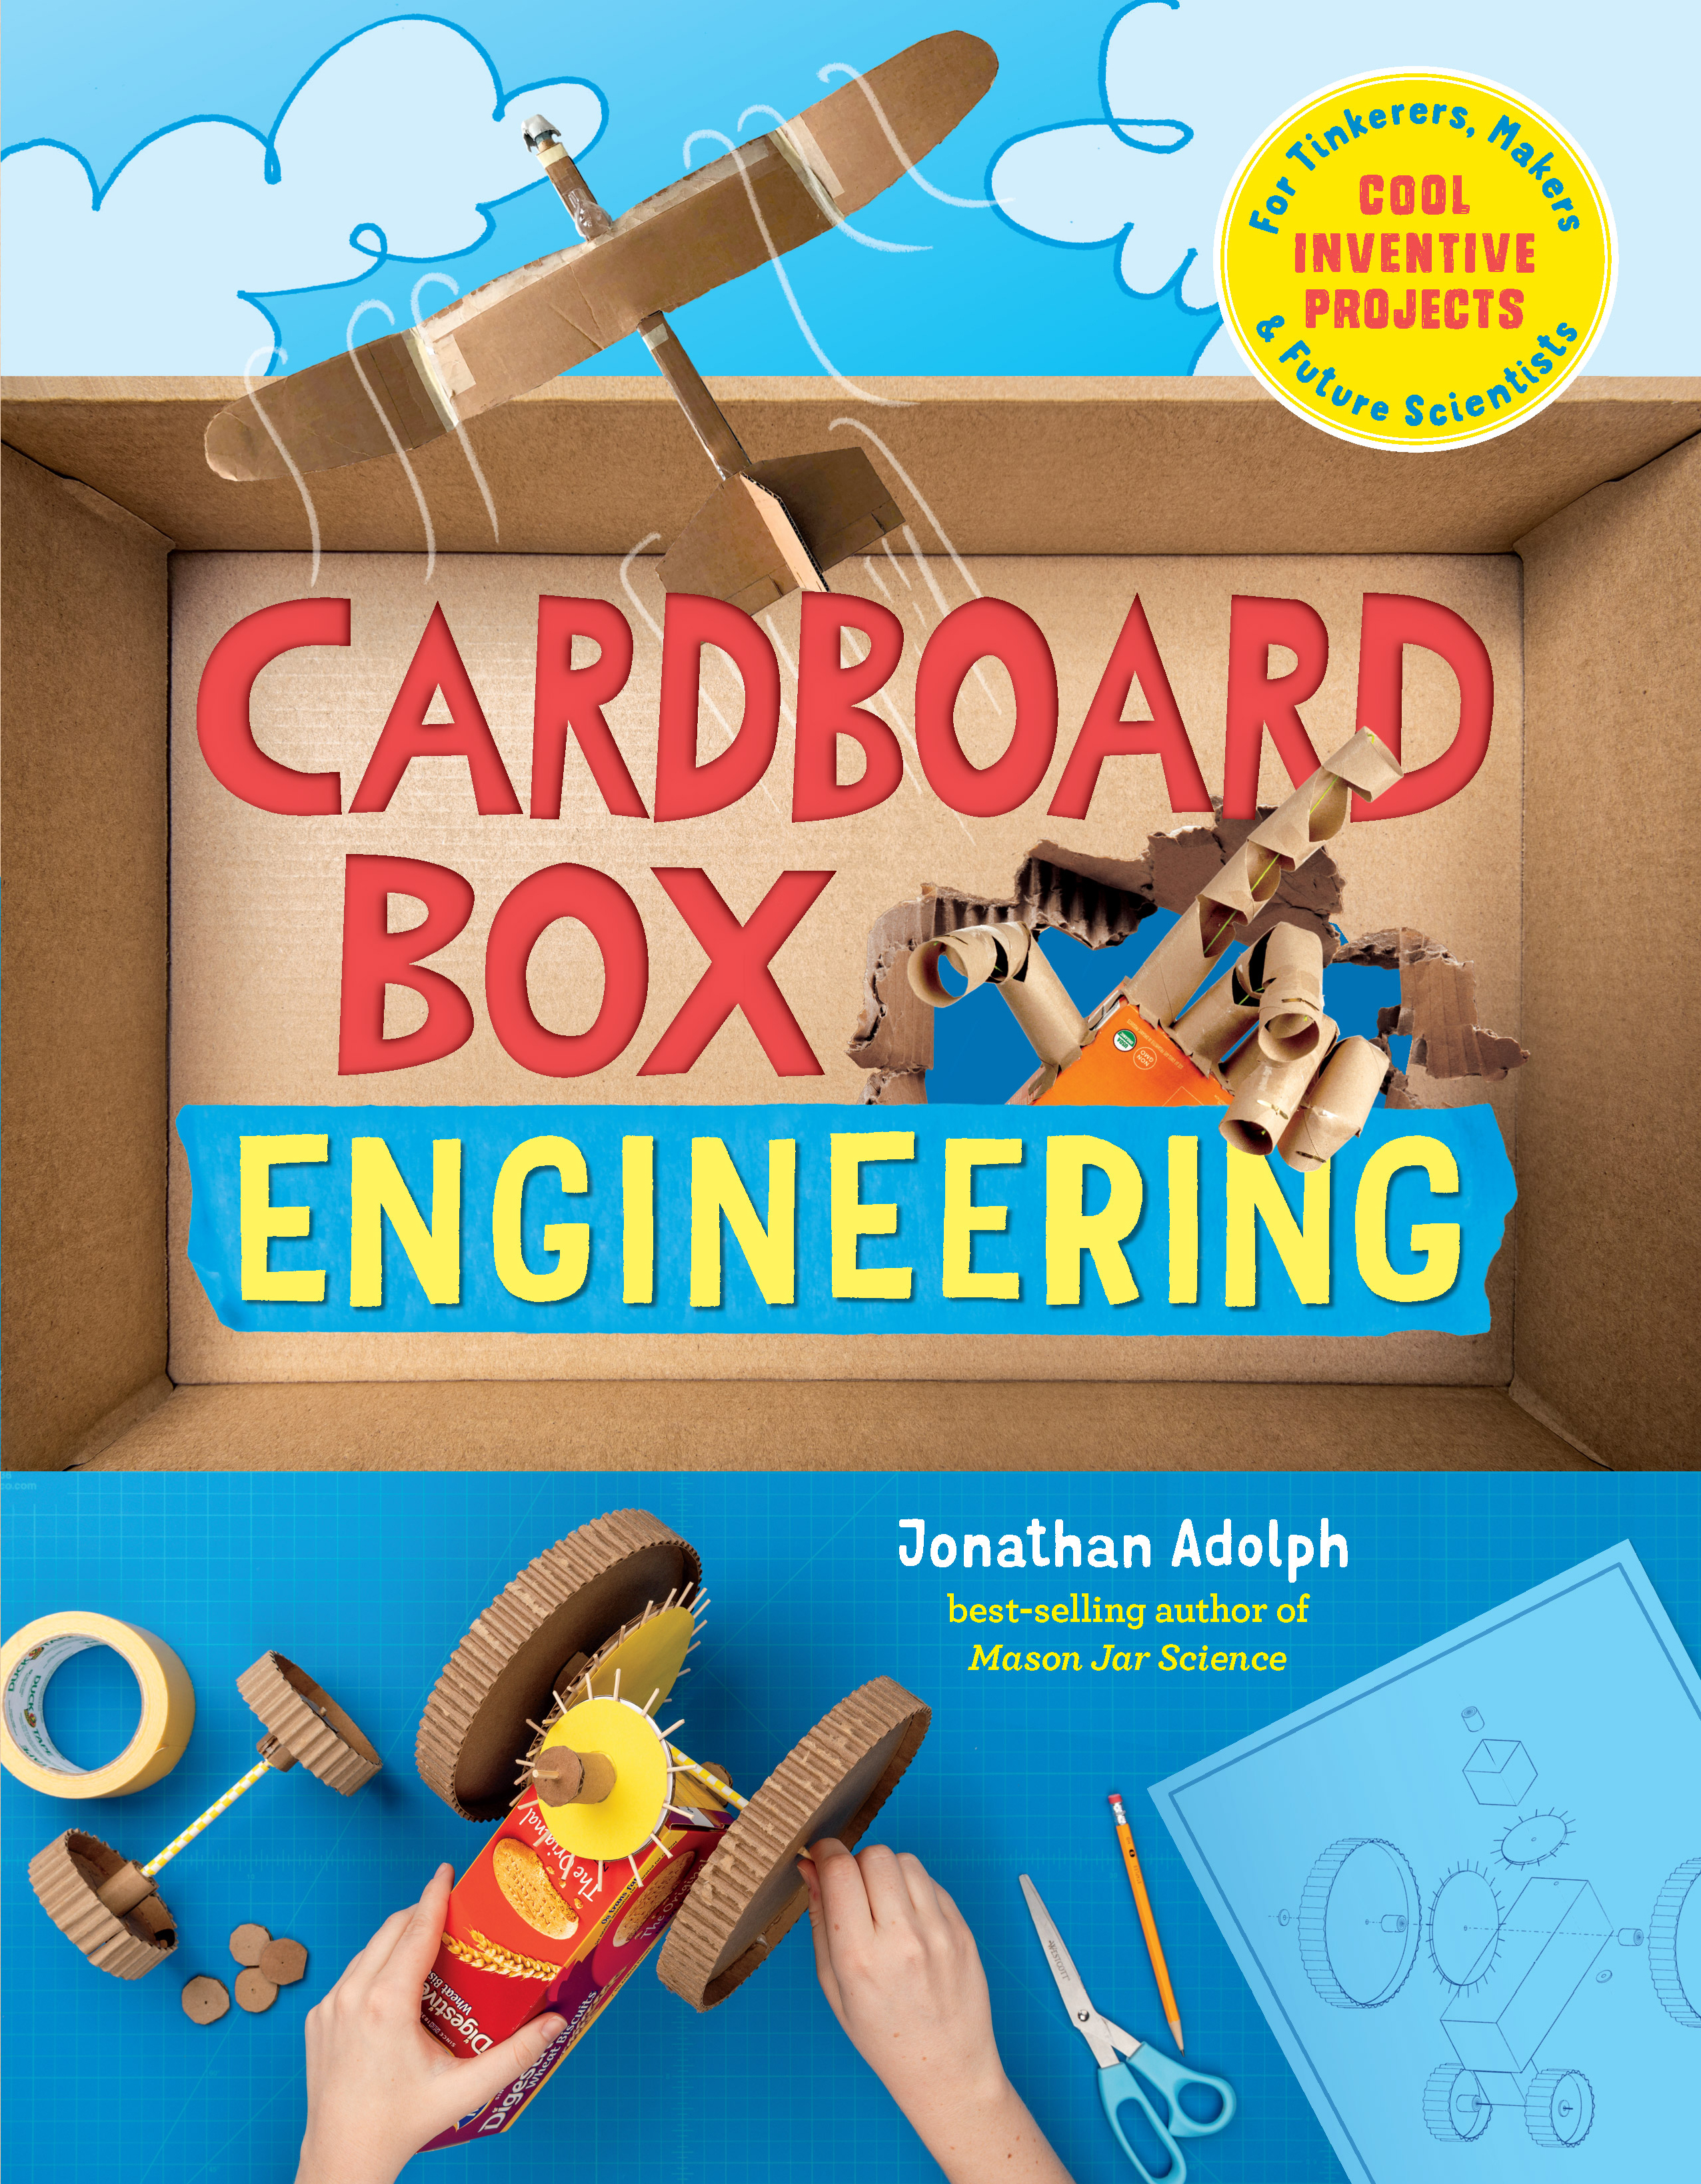 Cardboard Box Engineering Cool, Inventive Projects for Tinkerers, Makers & Future Scientists - Jonathan Adolph